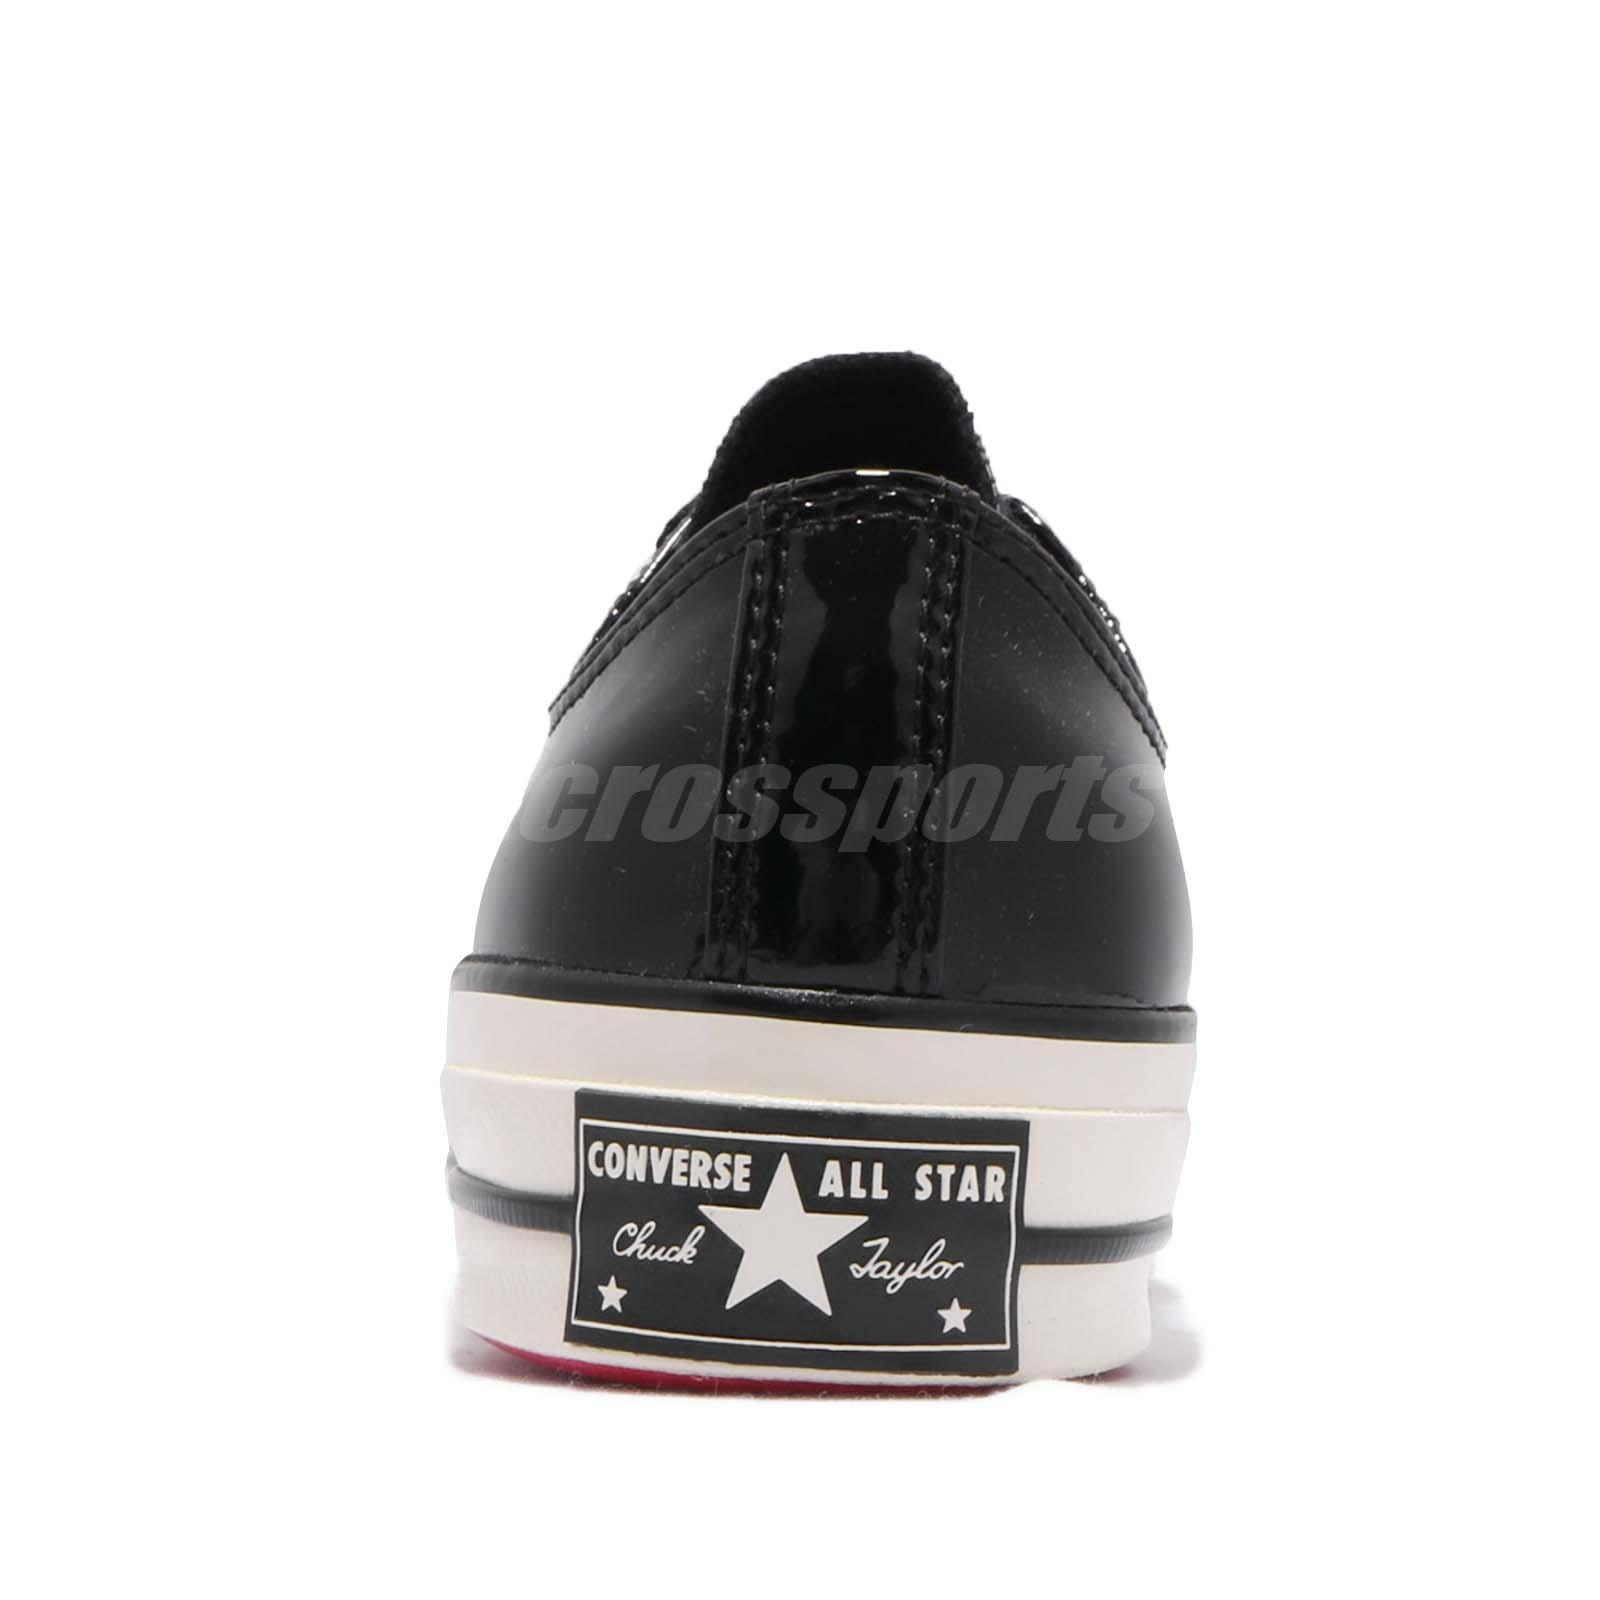 Details about Converse Chuck Taylor All Star 70 1970s Patent Leather Black Low Shoes 162438C